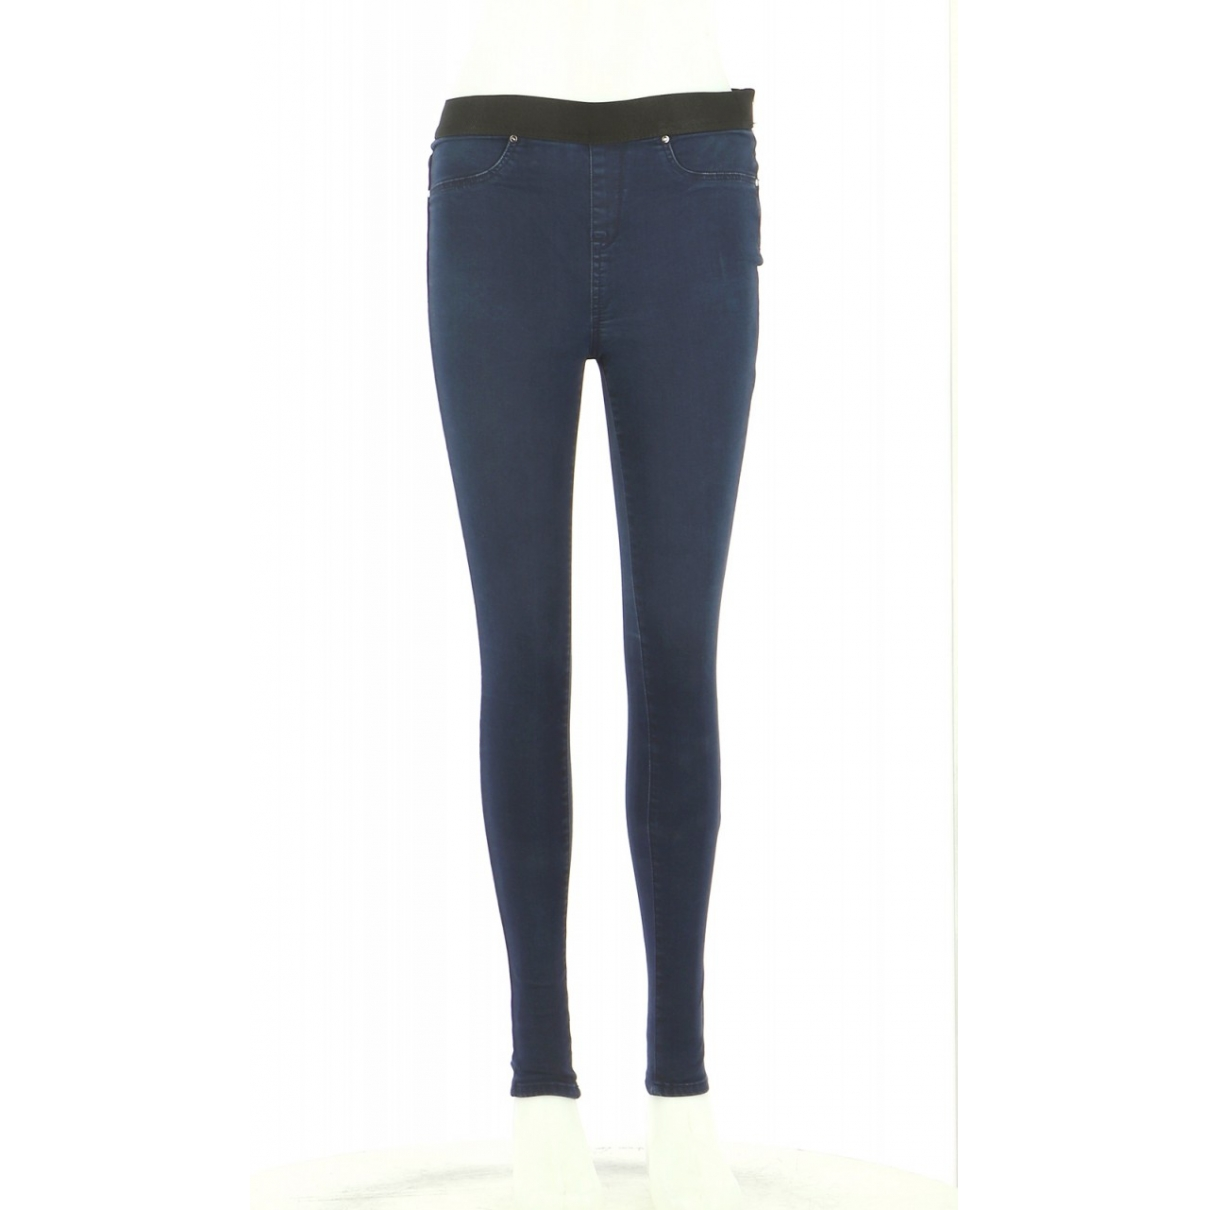 Karen Millen \N Navy Cotton Trousers for Women 36 FR